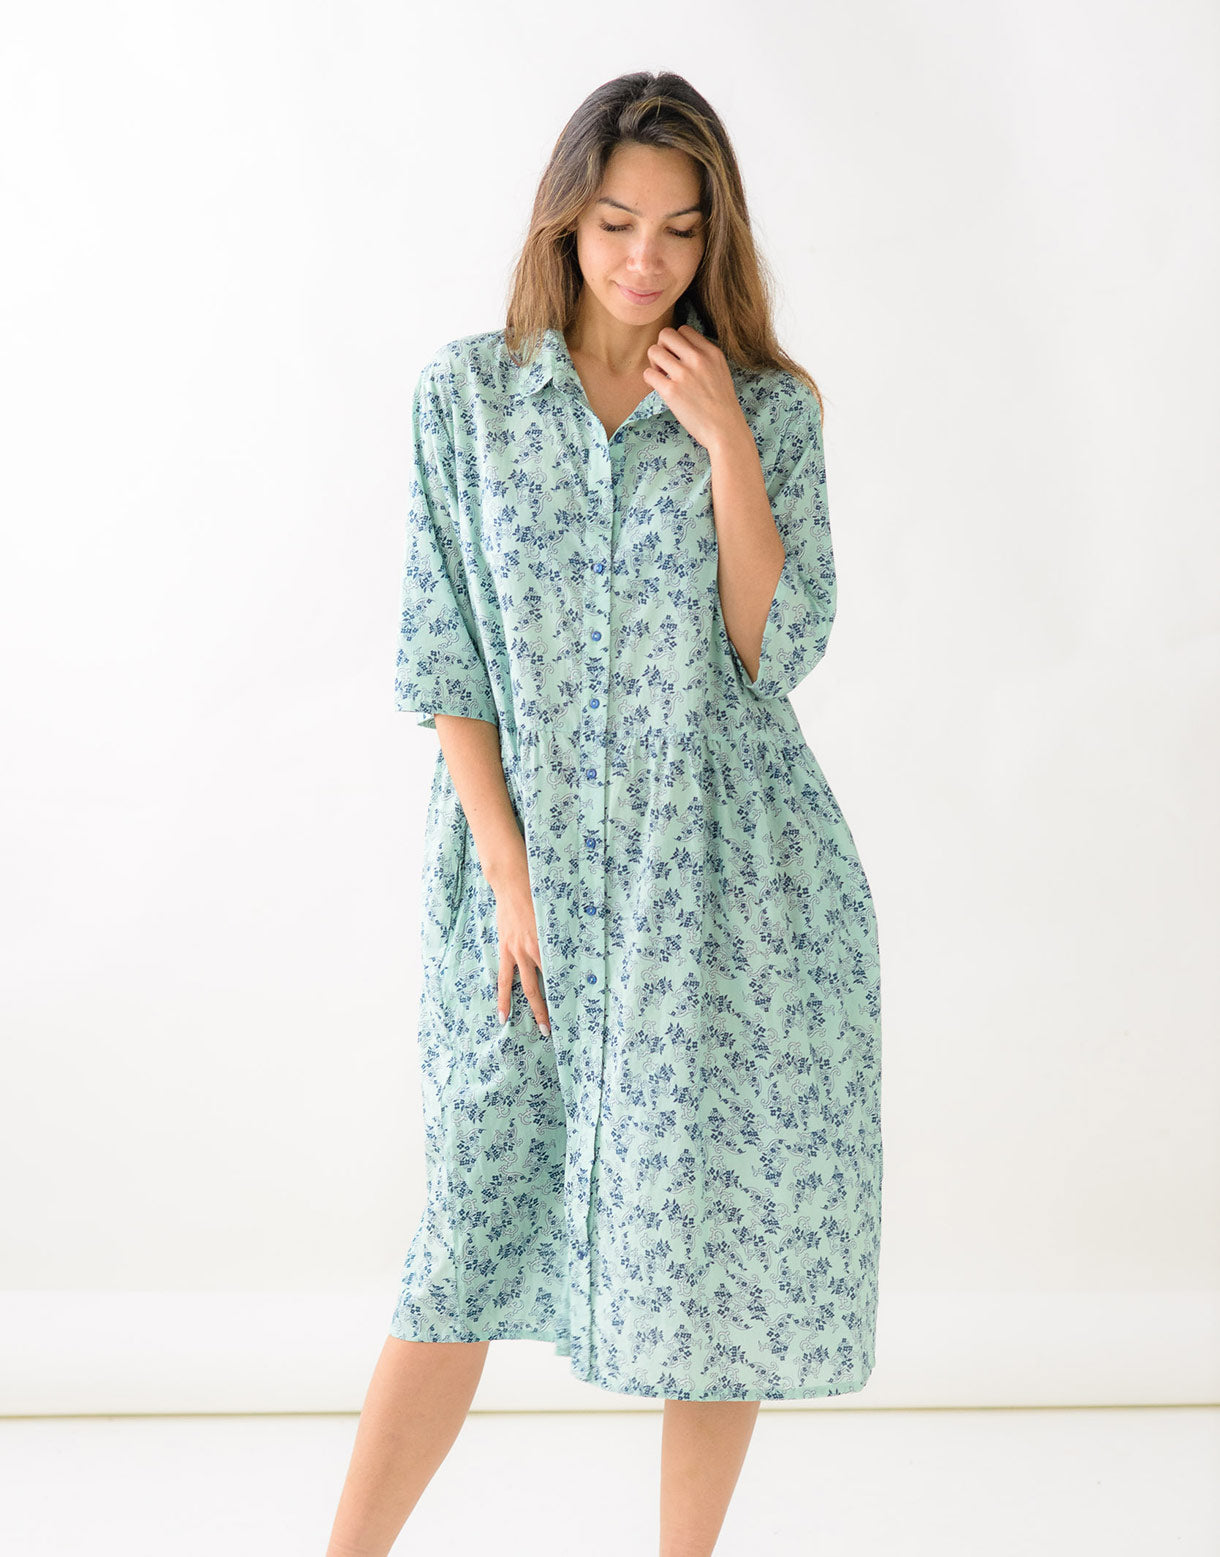 Aika Dress in Curlicue *organic cotton